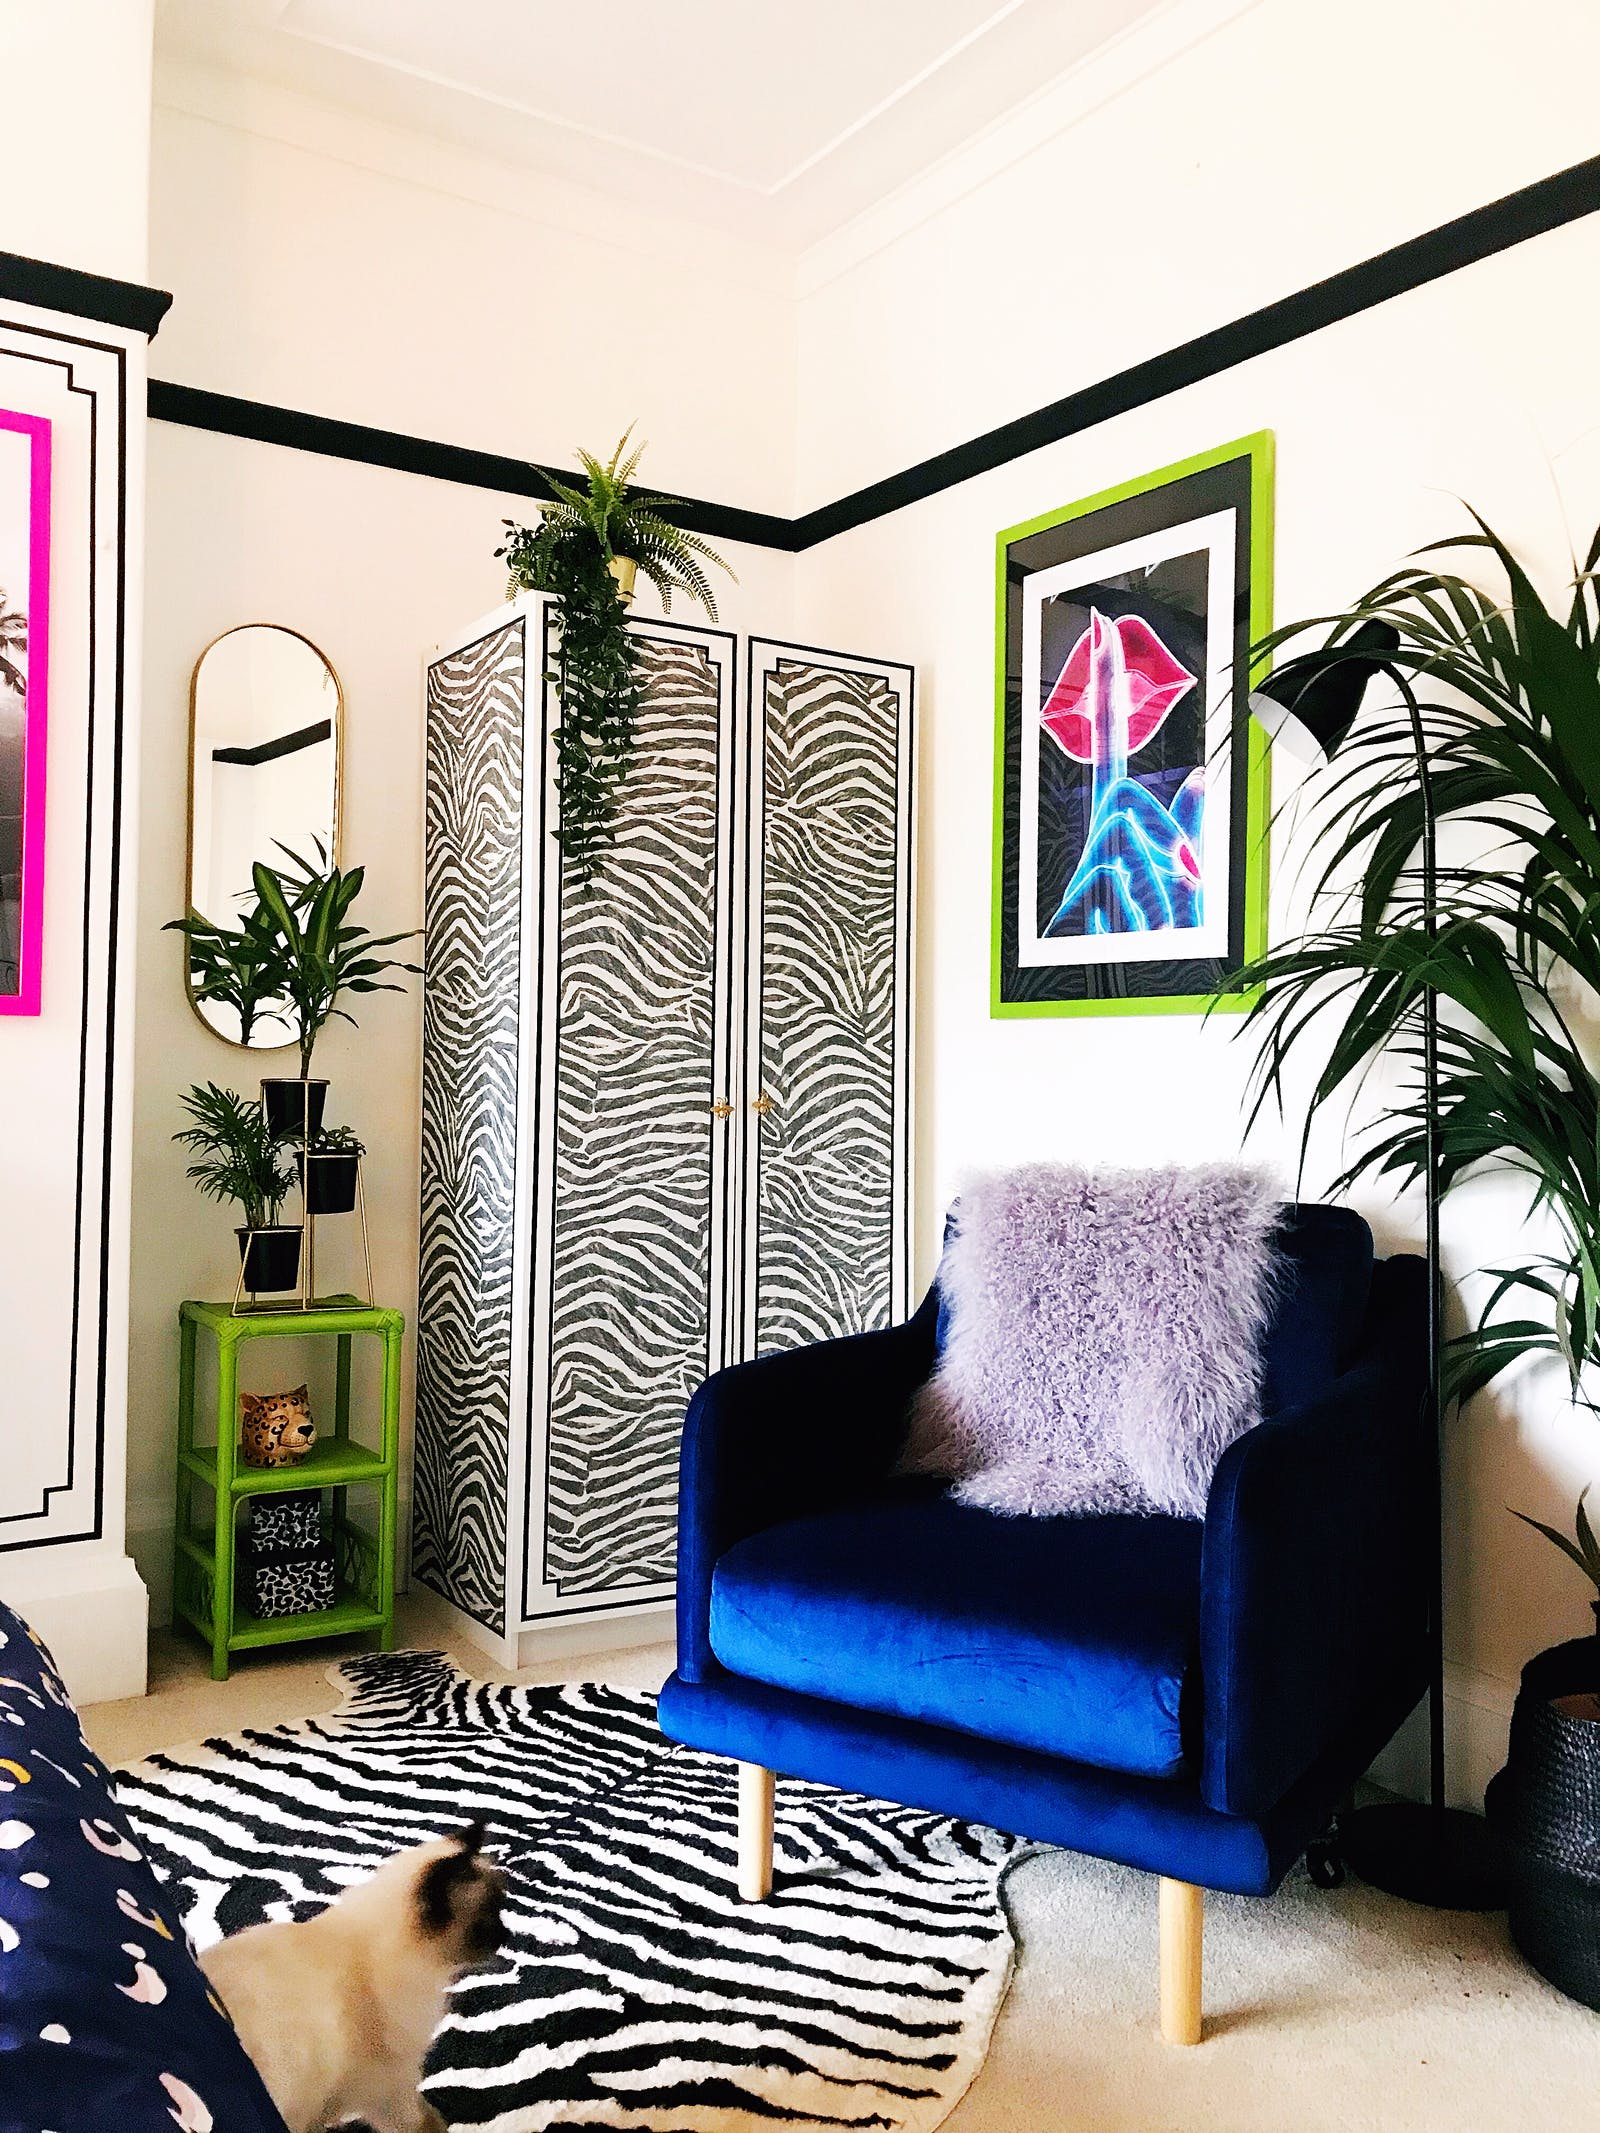 Living room with a blue chair and zebra furnishings